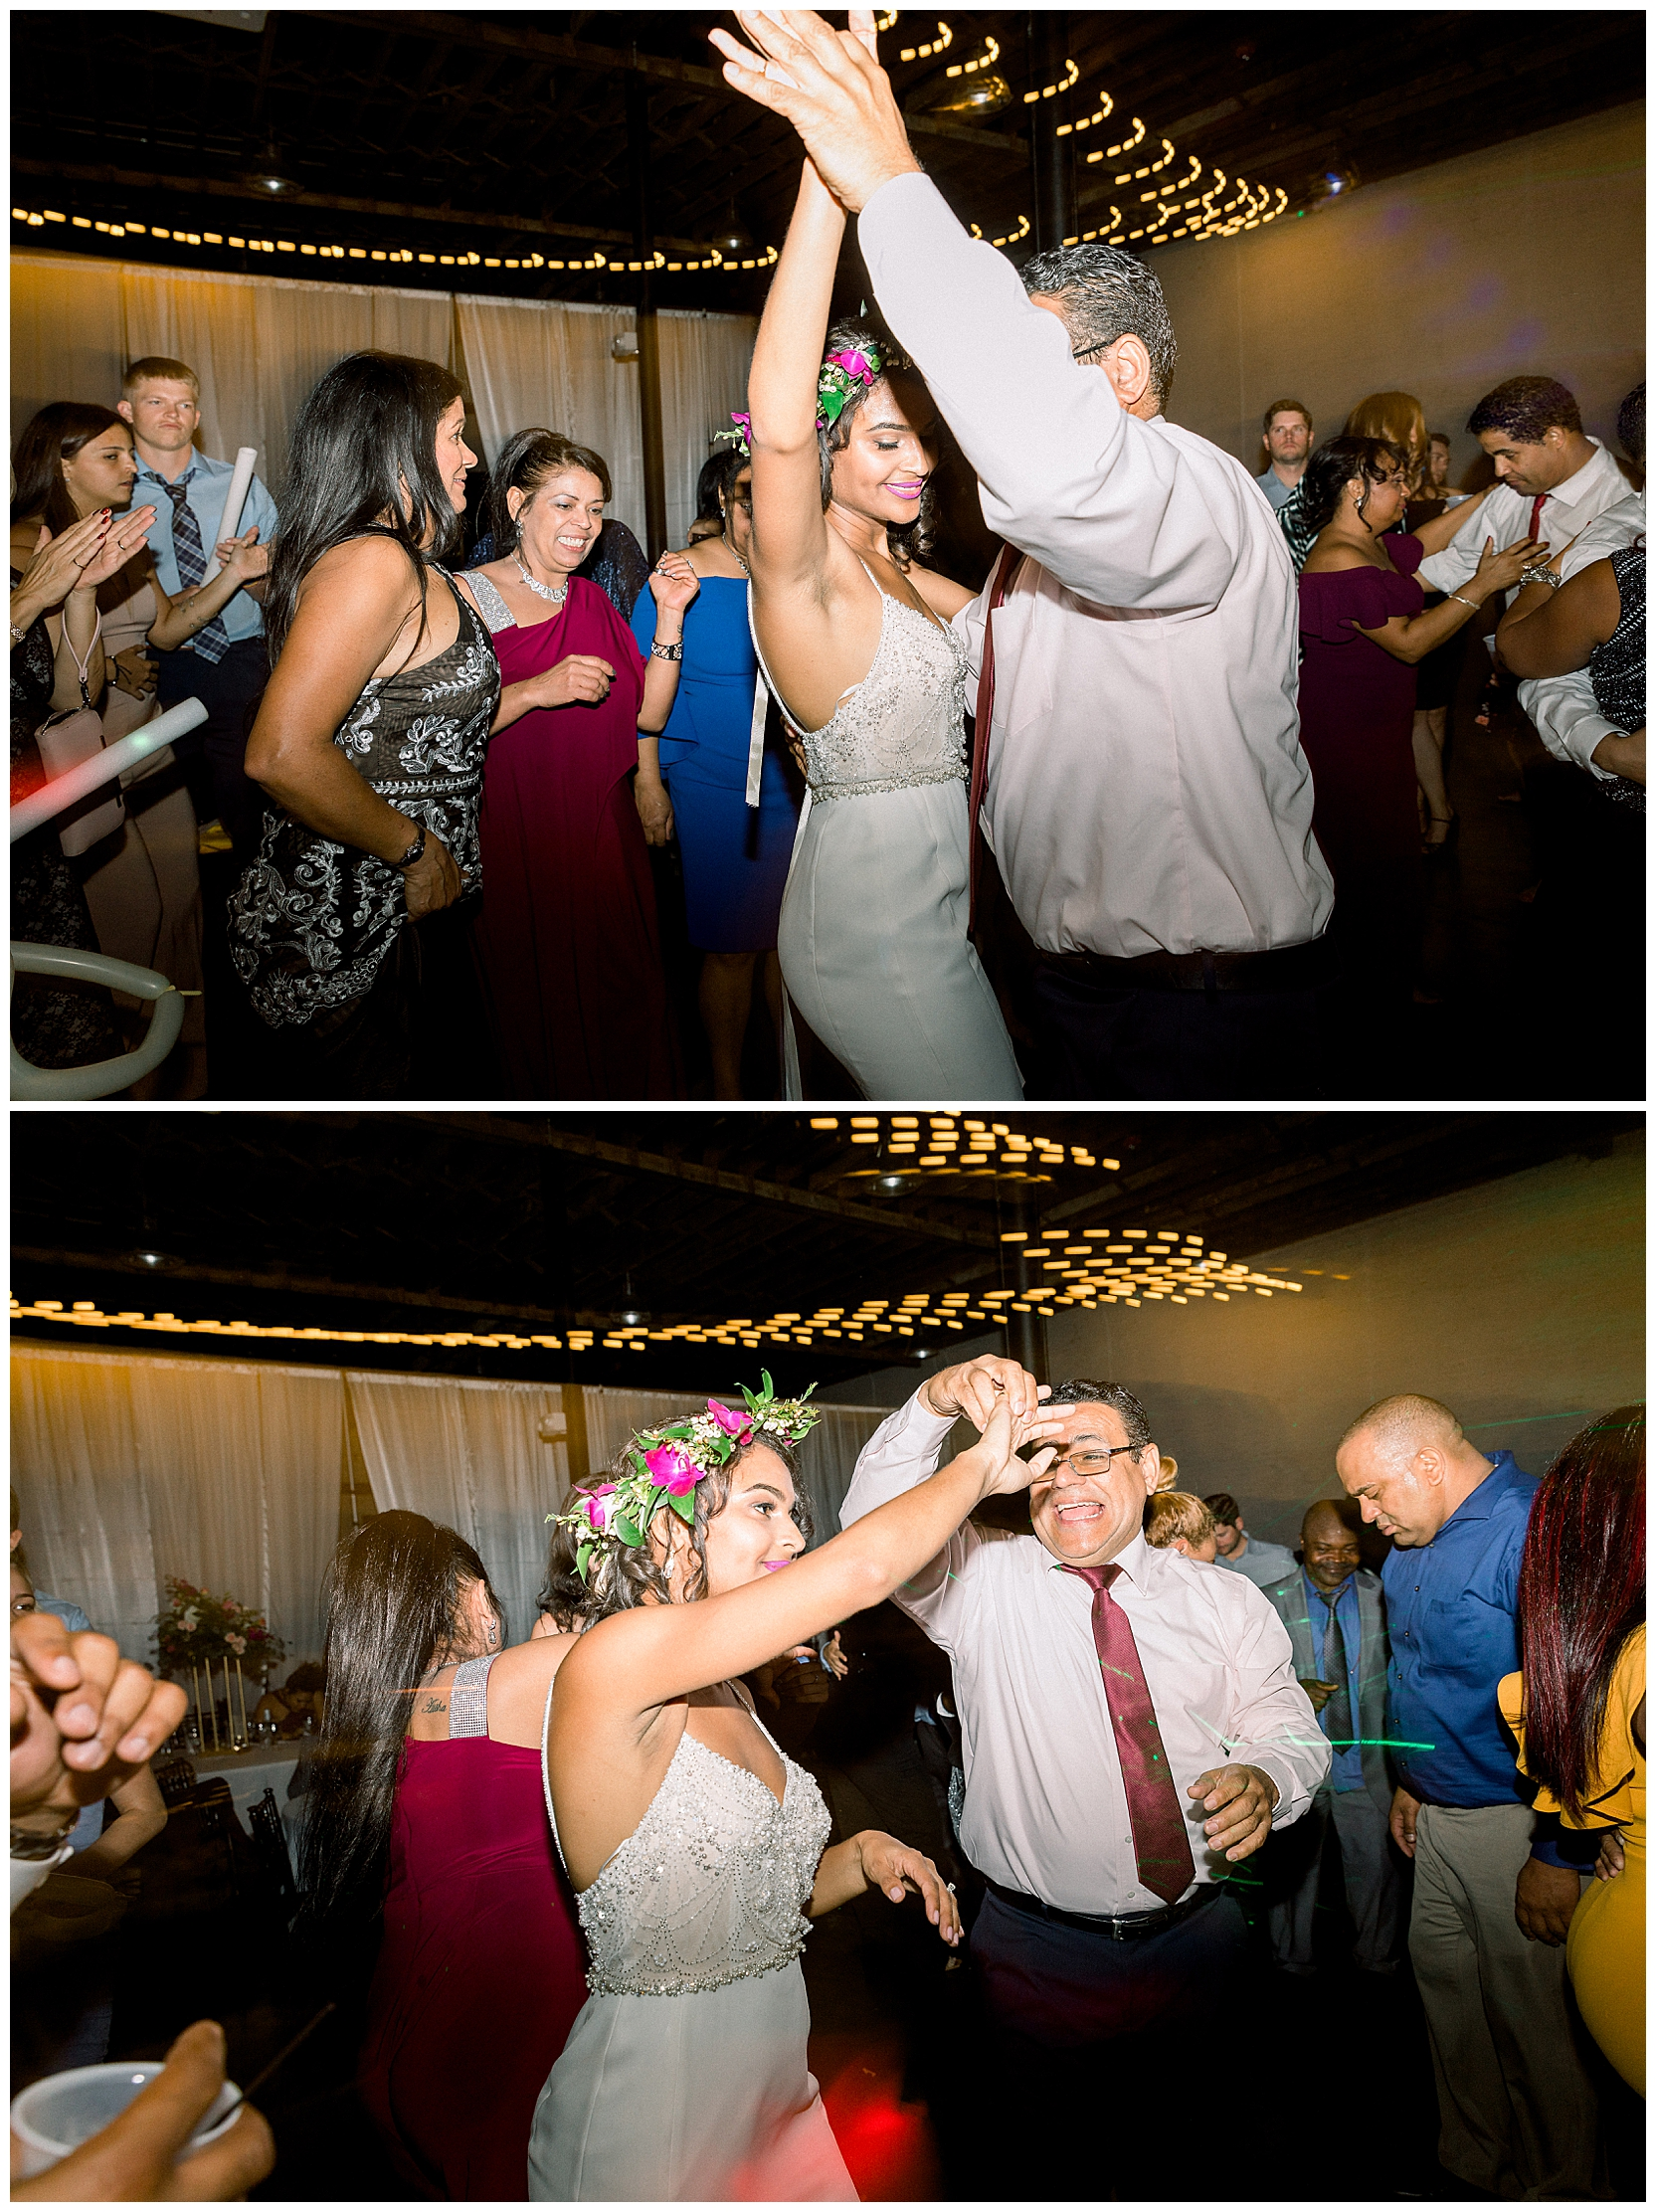 jessicafredericks_lakeland_tampa_wedding_purple_crazy hour_0104.jpg